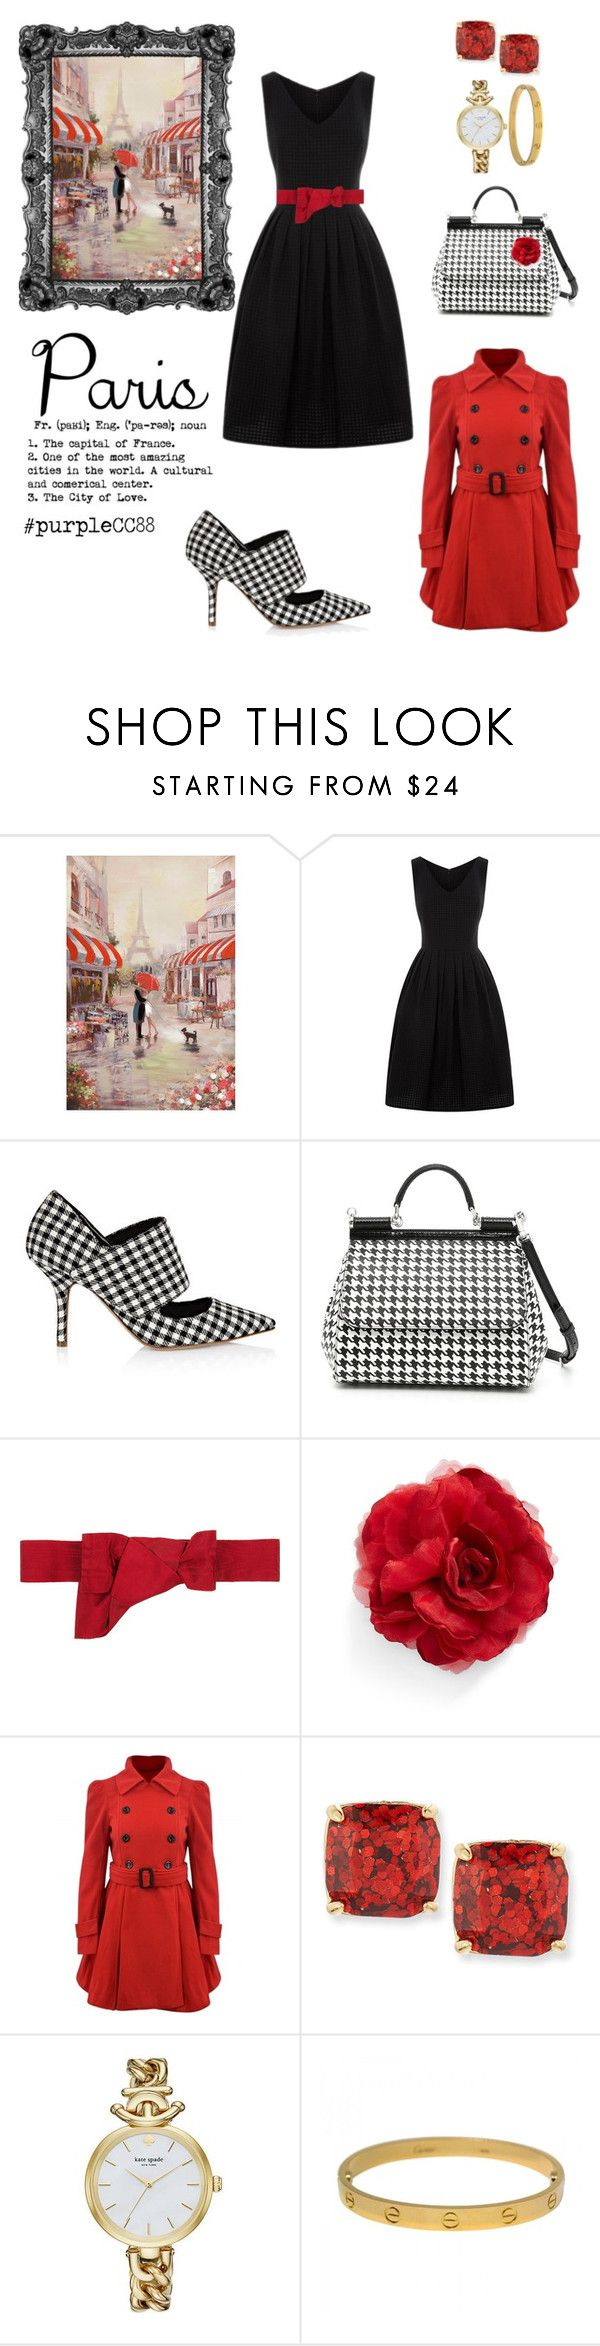 """""""Paris - Chic Style"""" by purplecc88criss on Polyvore featuring Erika Cavallini Semi-Couture, Dolce&Gabbana, Valentino, Cara, Kate Spade and Cartier"""